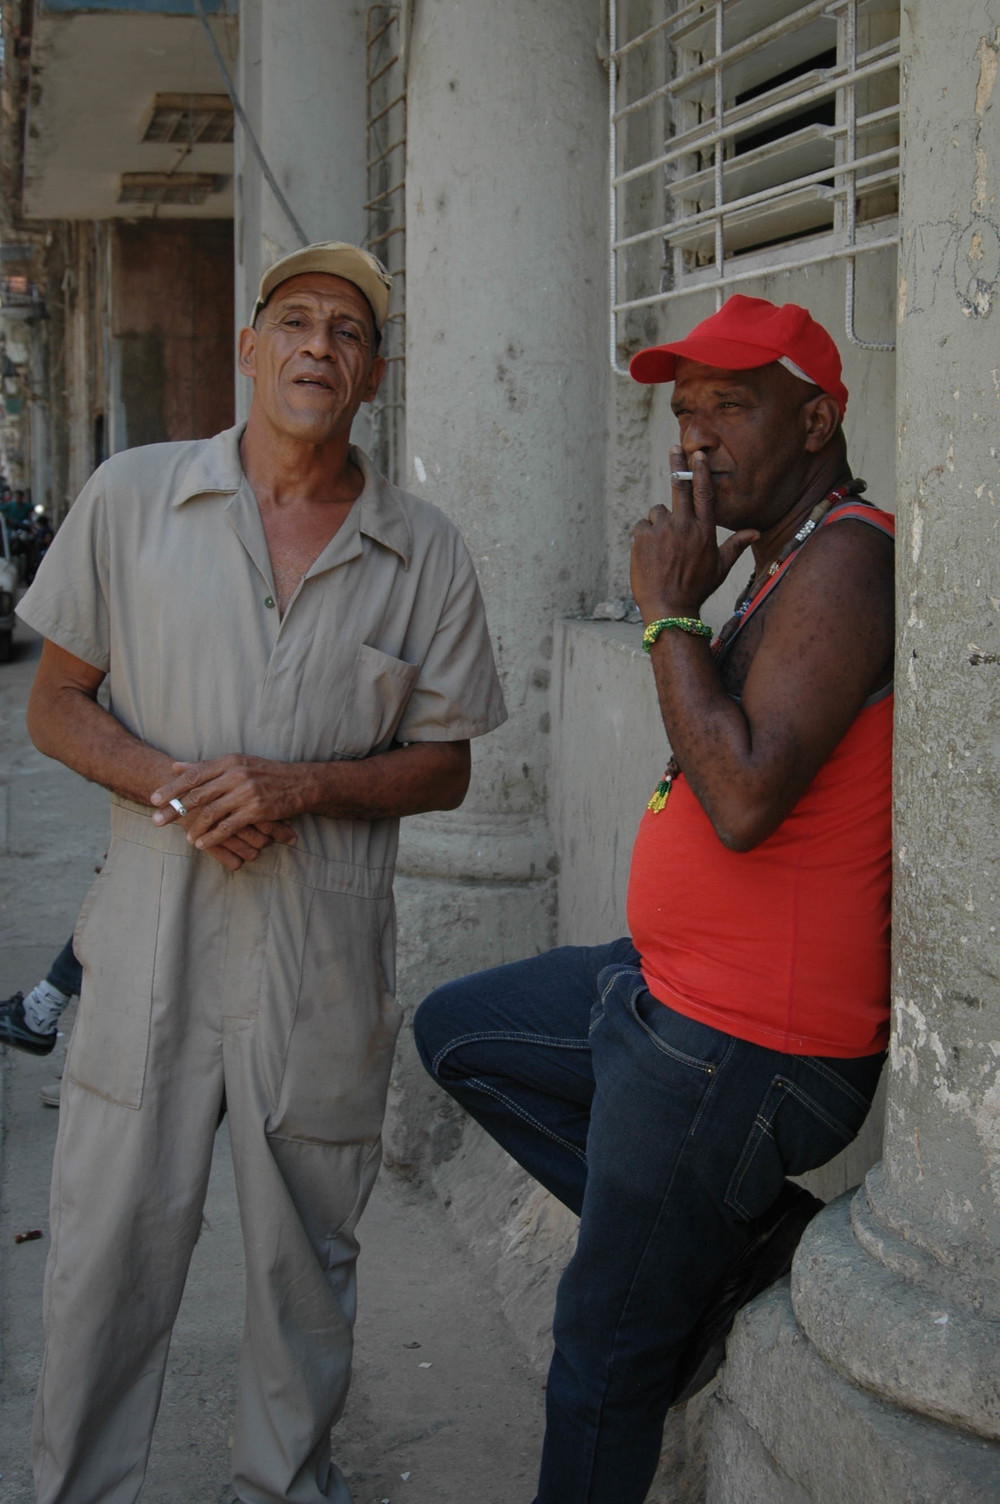 These are two of the kindest men I have ever met. Just two strangers in the street, yet they were so genuine.My Santero is on the right looking like a regular Joe, while his friend on the left..well you can just see the kindness in this man's face. He got goosebumps several times during our conversation and couldn't stress enough how I am a Cuban girl and not to ever let anyone tell me otherwise because I have it in my blood.